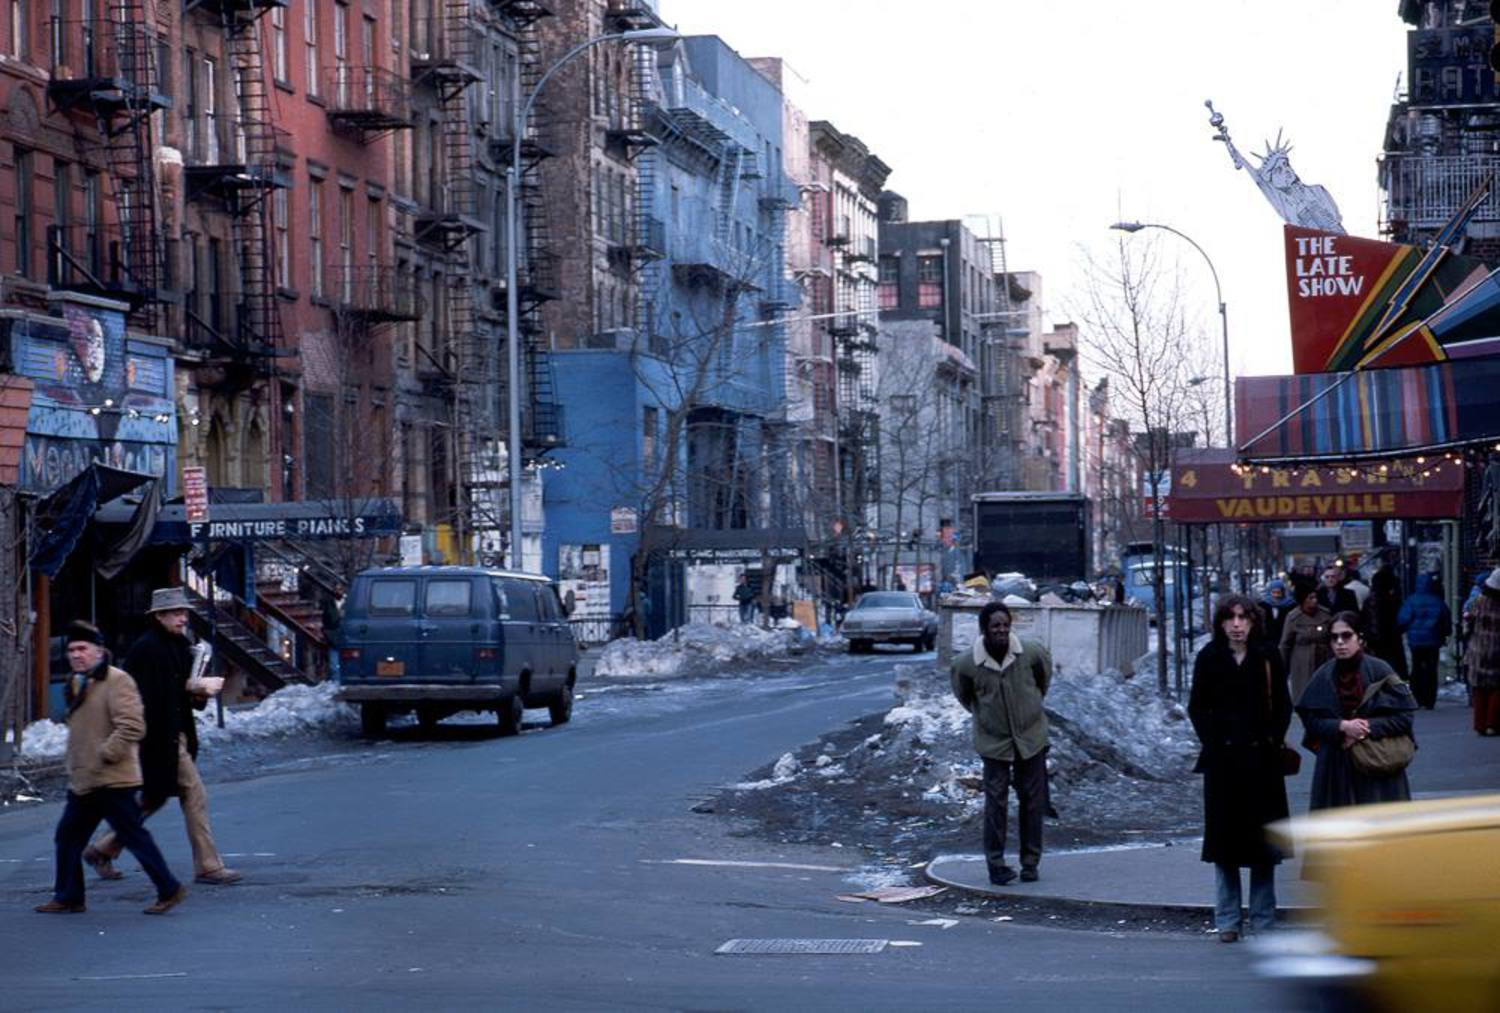 A quick trip to St. Mark's Place circa 1978